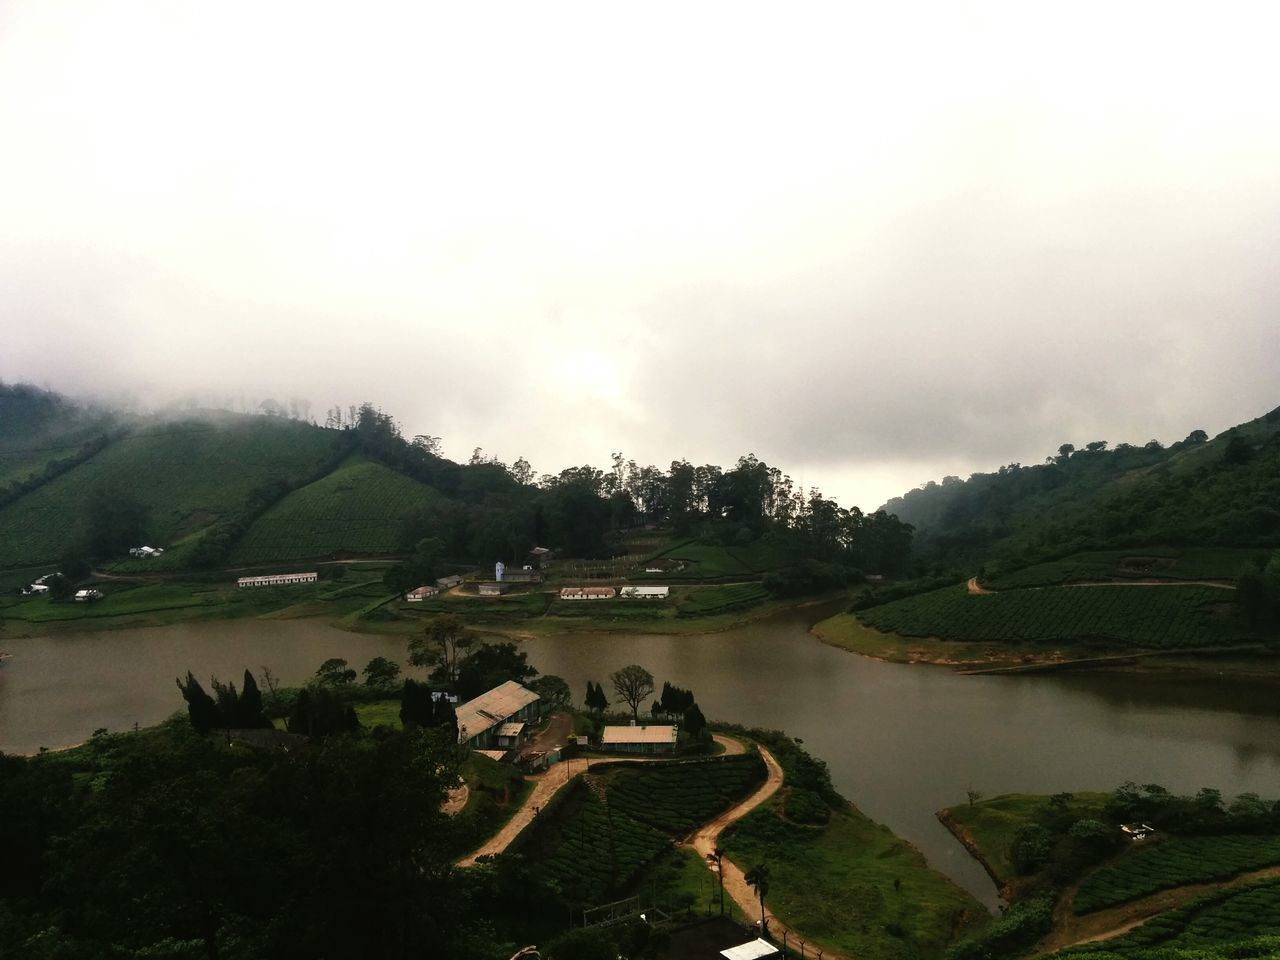 water, mountain, lake, nature, scenics, outdoors, no people, tree, beauty in nature, fog, tranquility, sky, landscape, day, architecture